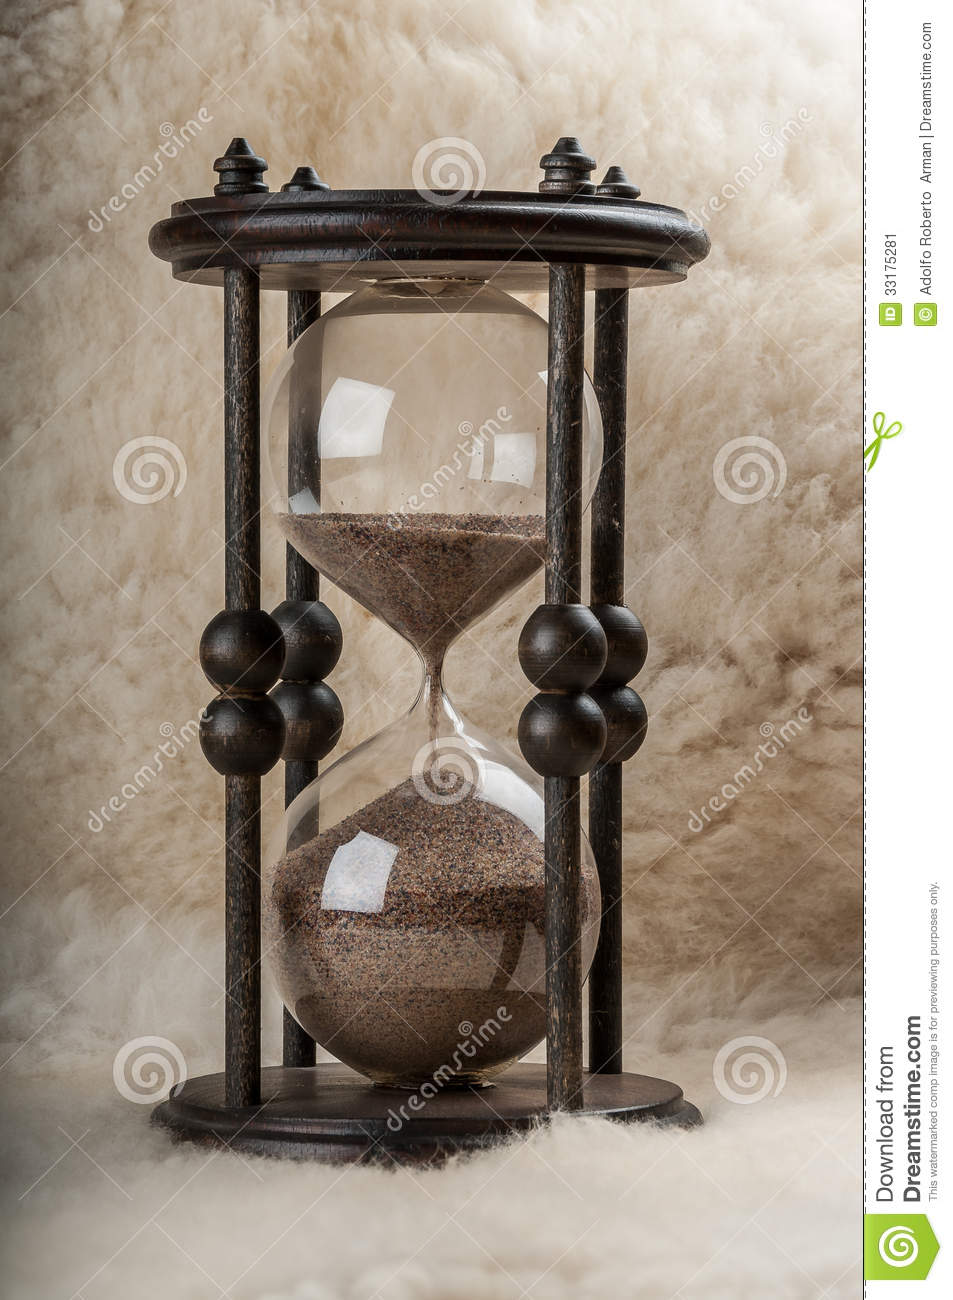 Time Is Money. Antique Hourglass. Stock Image - Image: 33175281